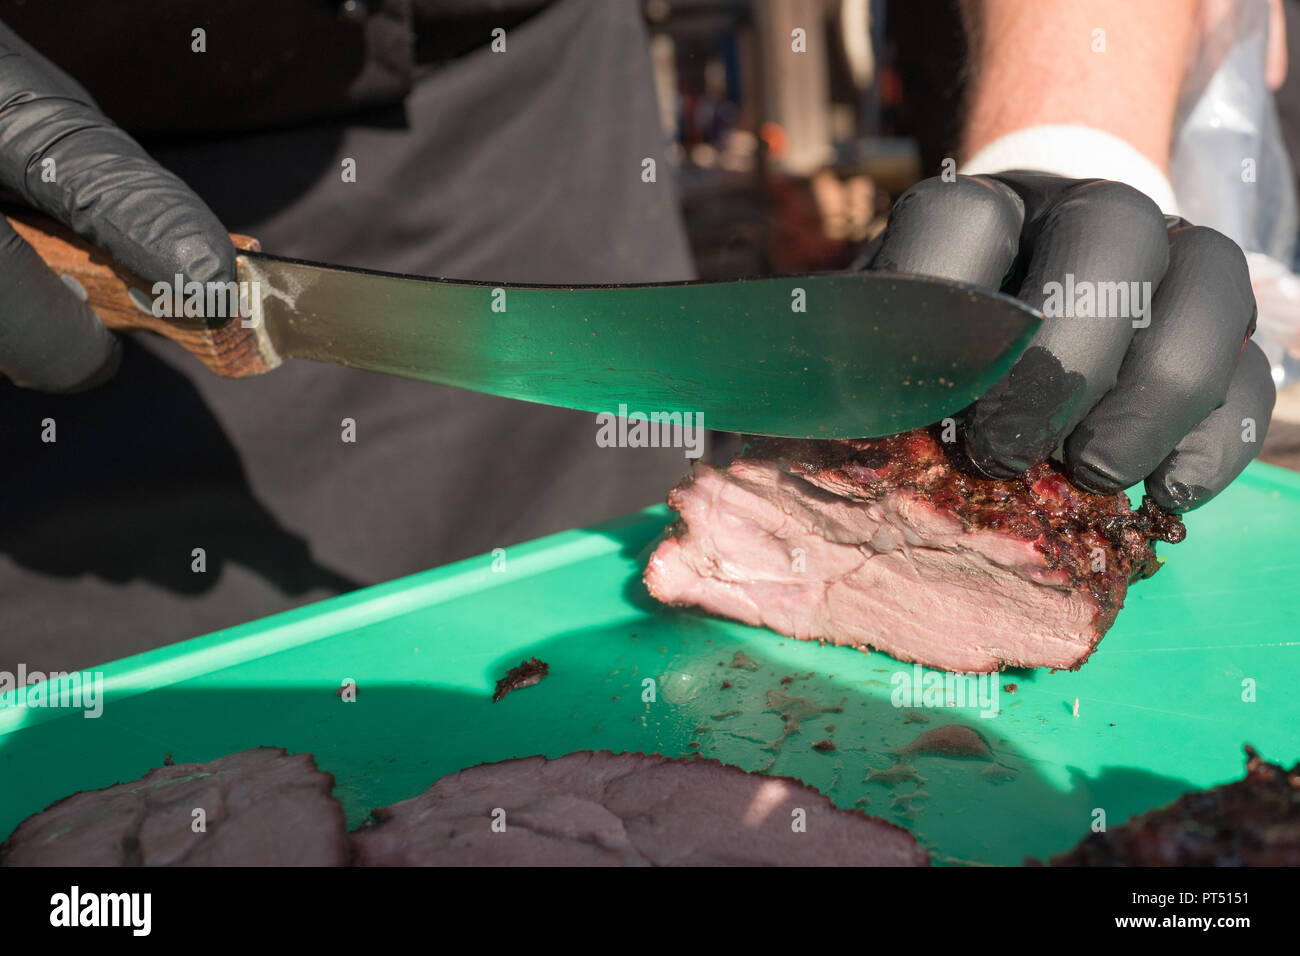 Templin, Brandenburg. 06th Oct, 2018. 06 October 2018, Germany, Templin: A grilled piece of Templin wild boar is cut into slices at the first 'Brandenburg Barbecue Championship' in the 'El Dorado Templin'. A total of eight teams grill for the grill crown. Credit: Jörg Carstensen/dpa/Alamy Live News - Stock Image